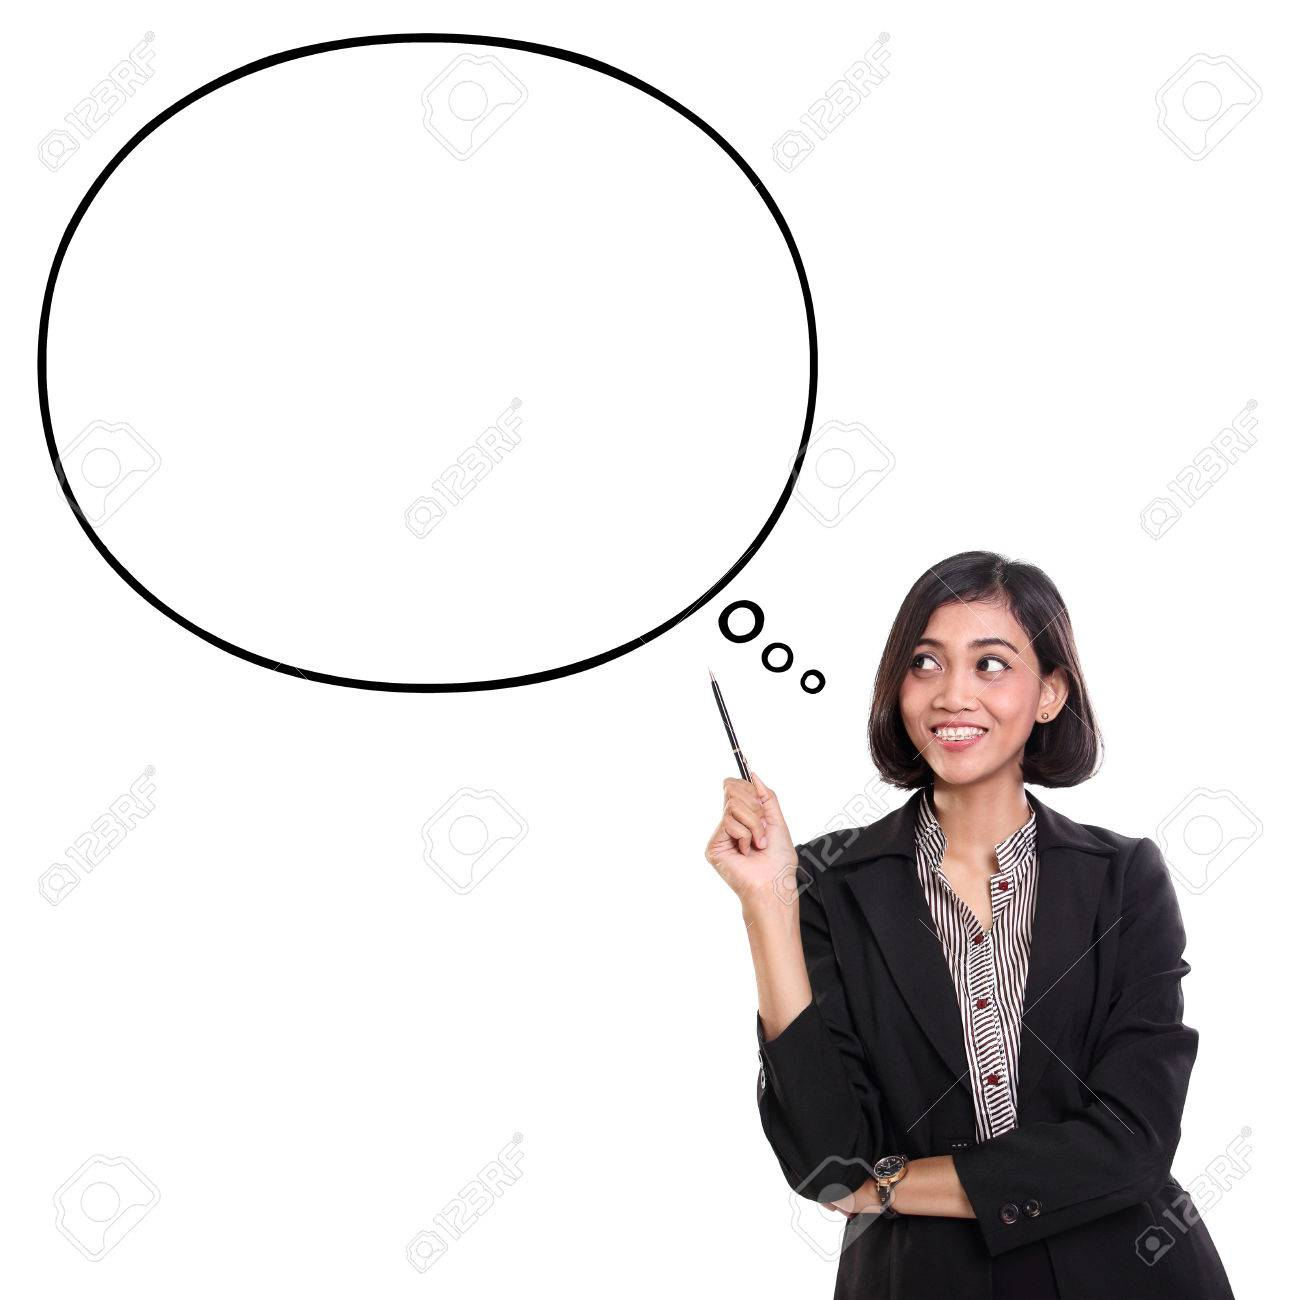 Cheerful Asian Businesswoman Looking At An Empty Thought Bubble